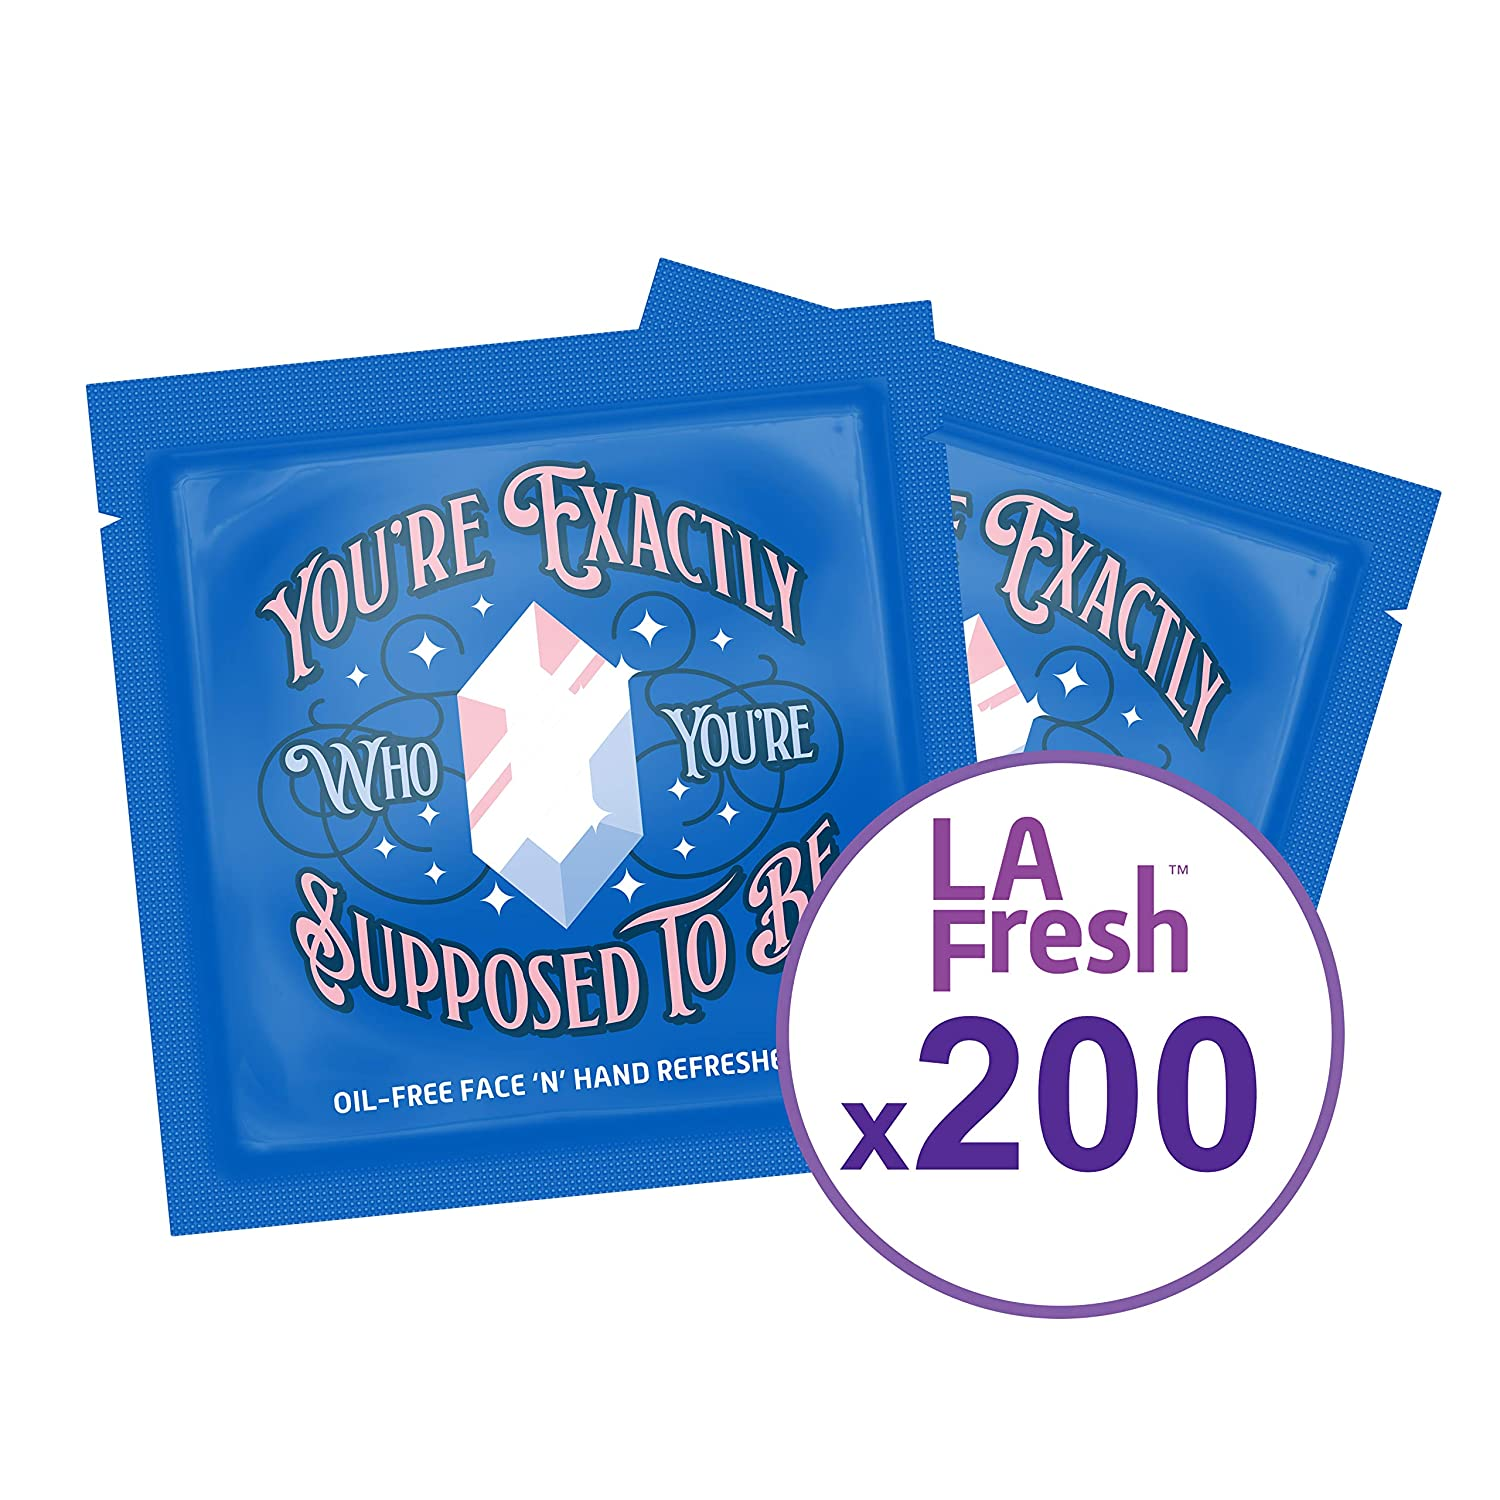 LA Fresh Oil Free Face and Hand Refreshing Wipes, individually sealed wrapper, Japanese Yuzu Scent - Bulk Buy Pack of 200